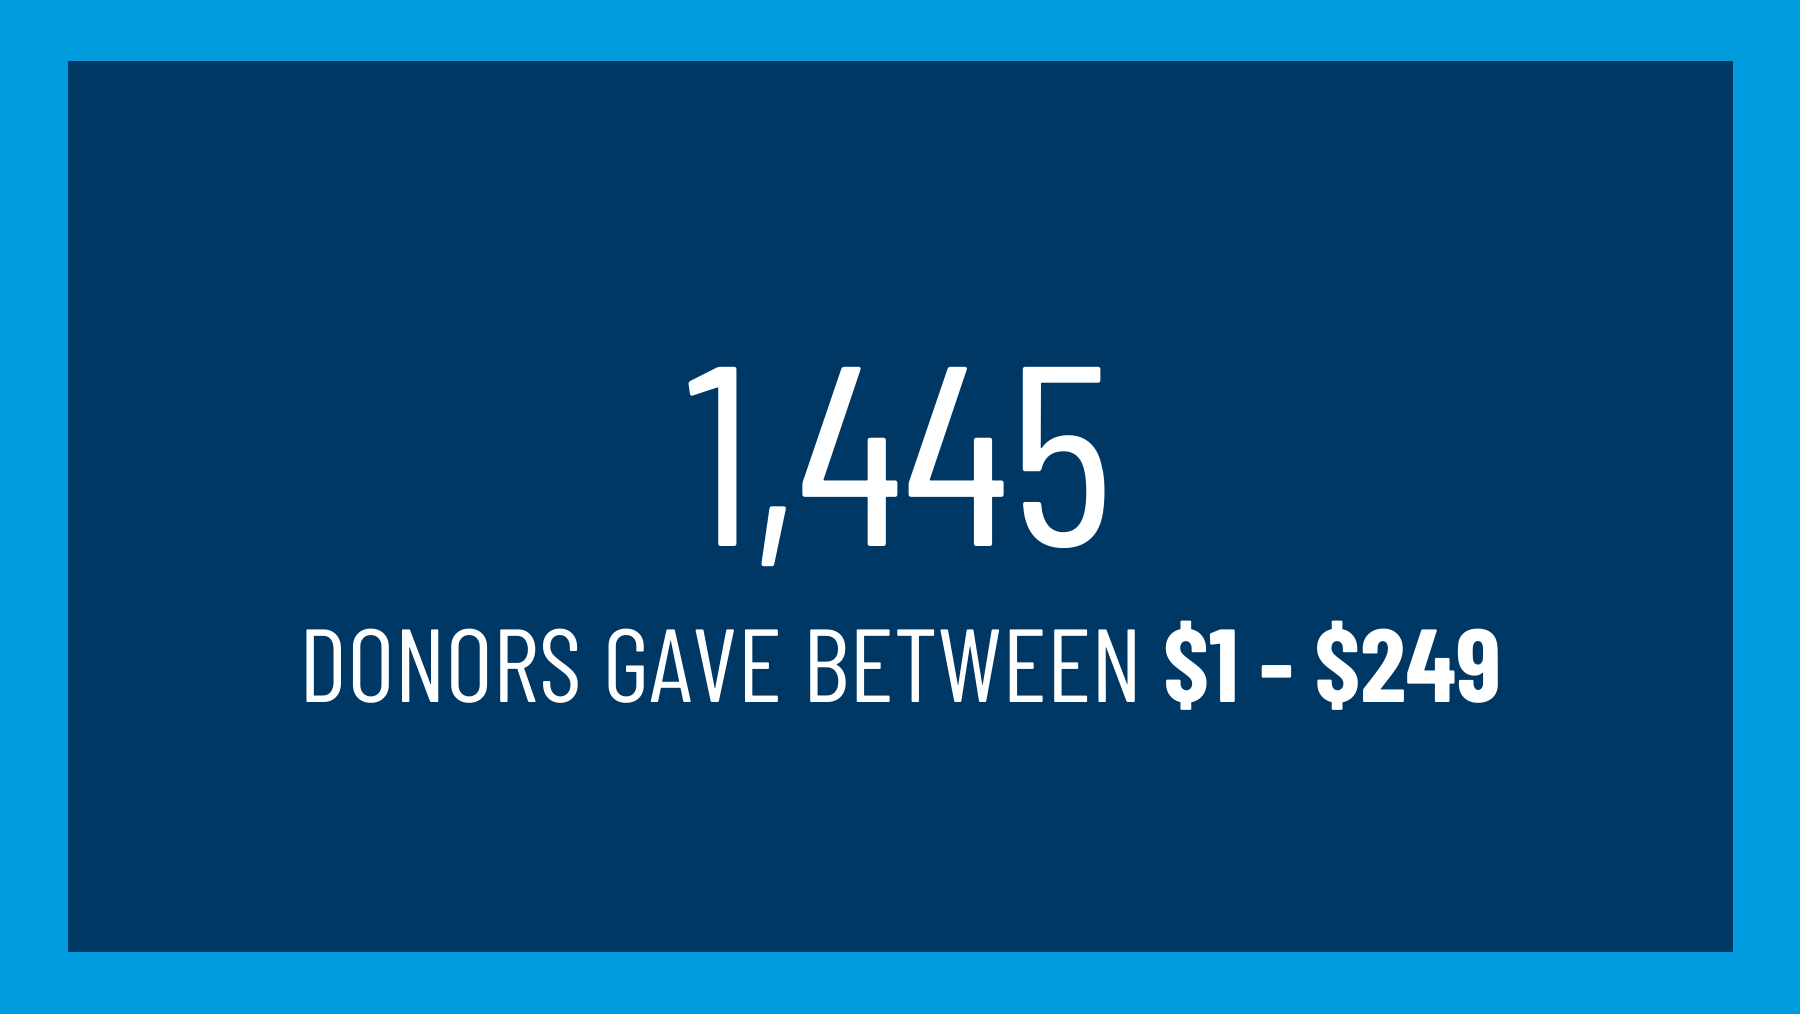 1,445 donors gave between $1 - $249